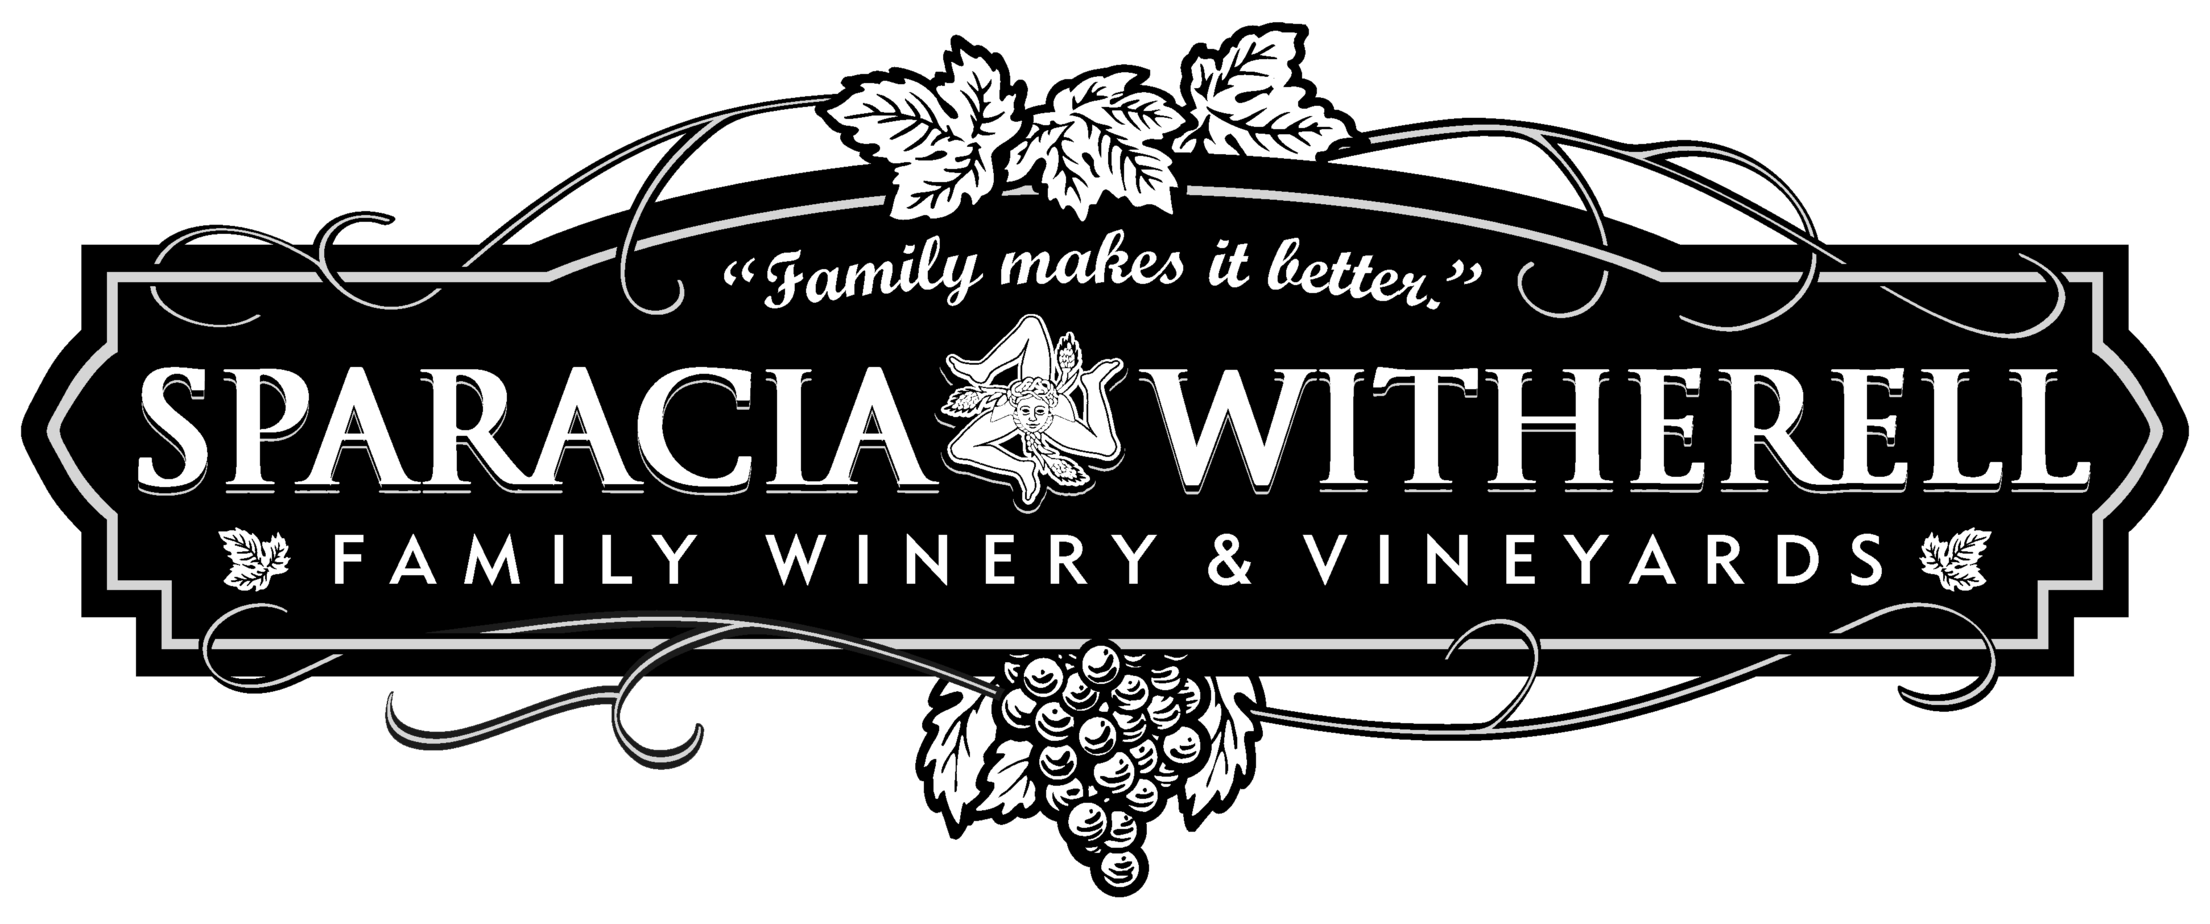 Sparacia-Witherell Family Winery